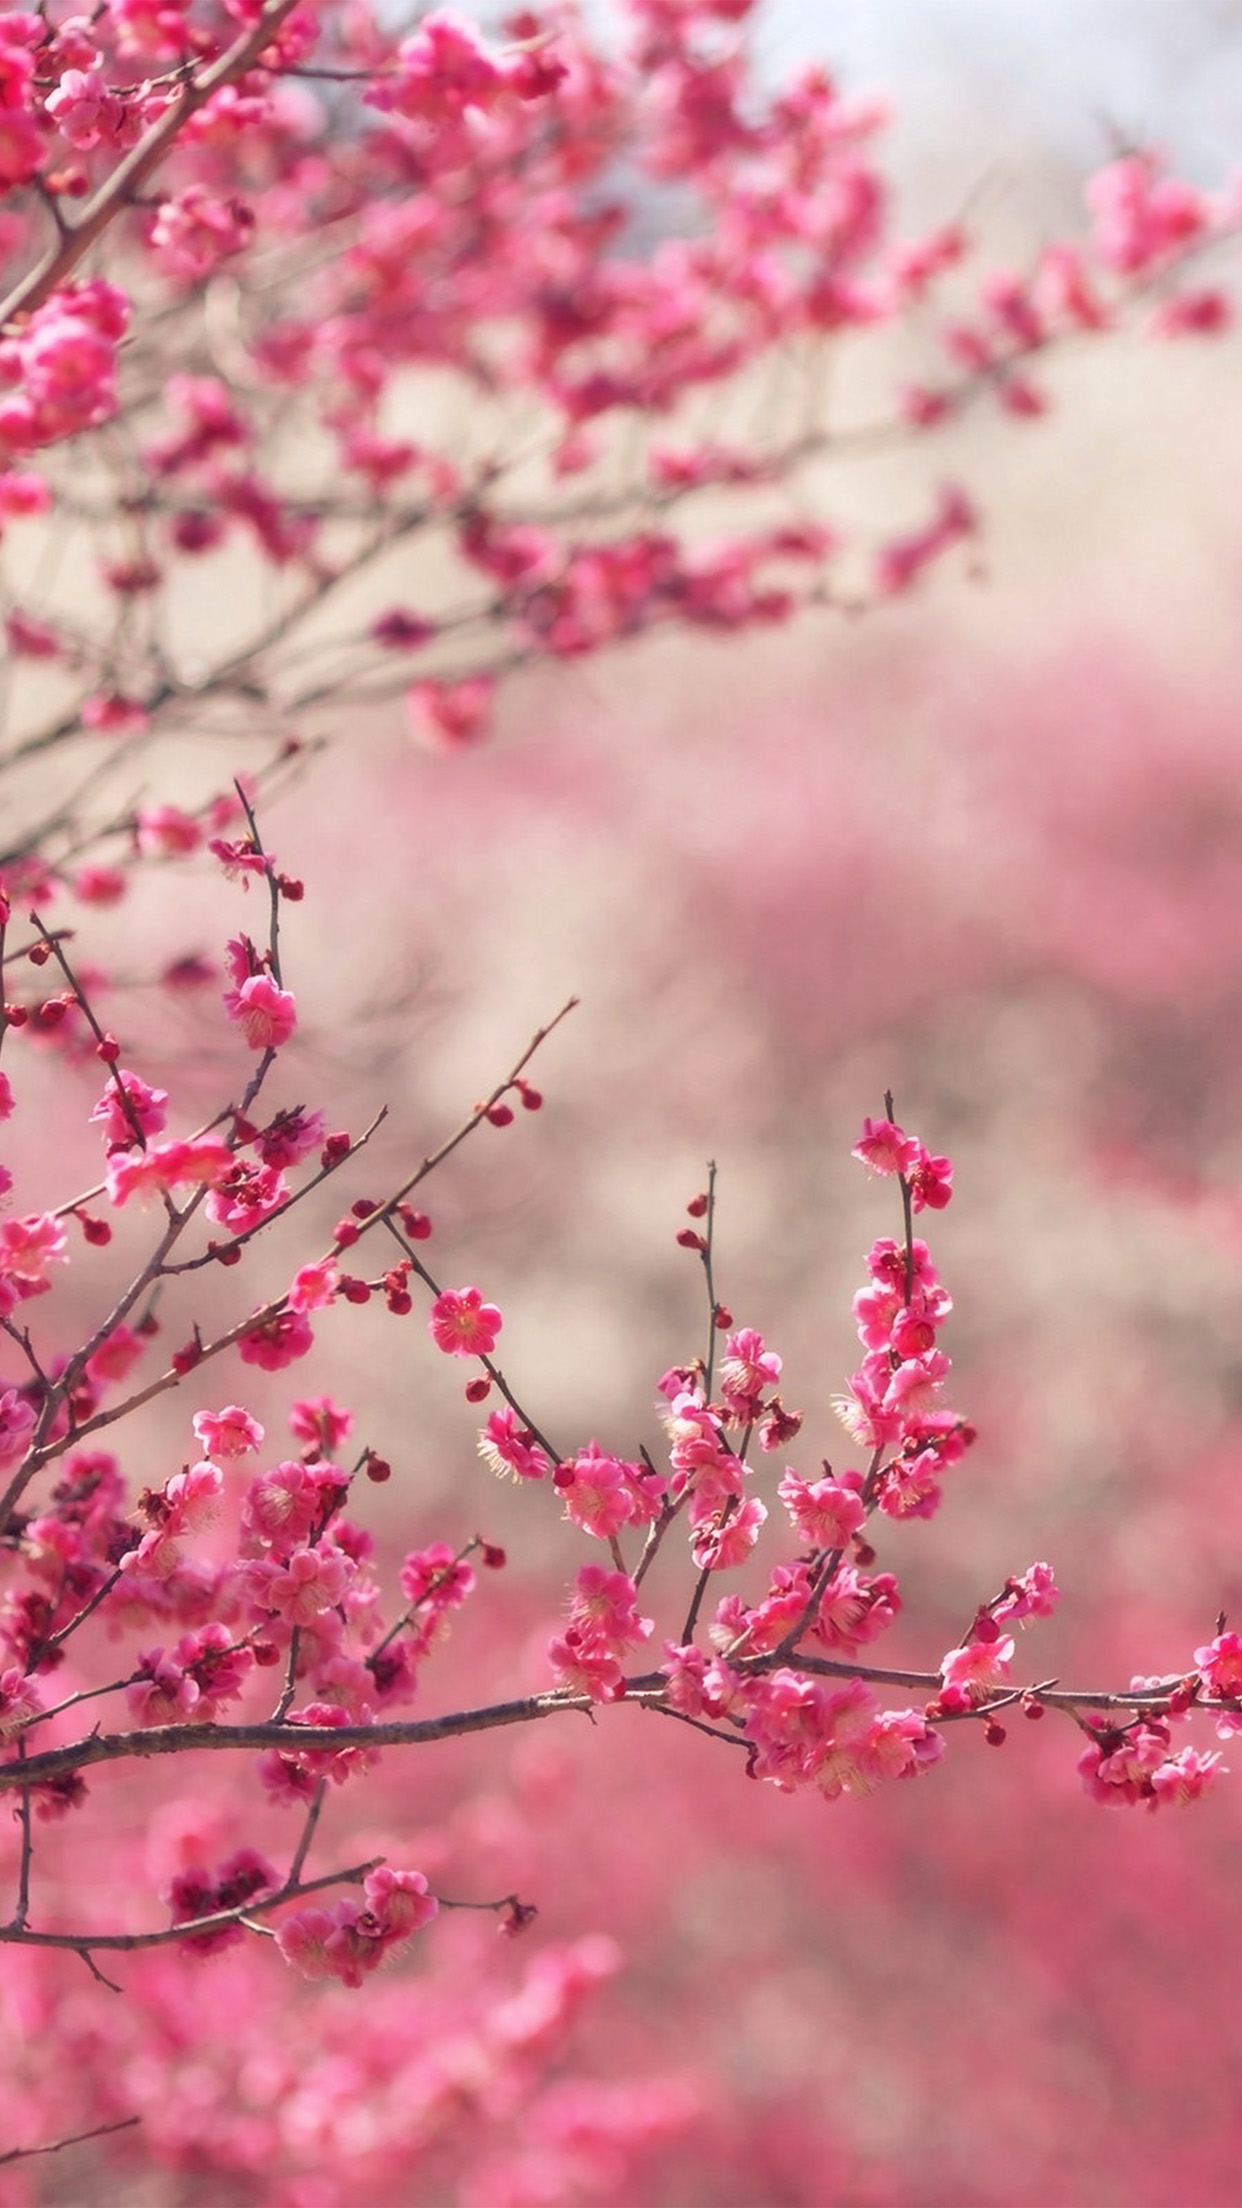 Iphone7papers Com Iphone7 Wallpaper Nf14 Pink Blossom Nature